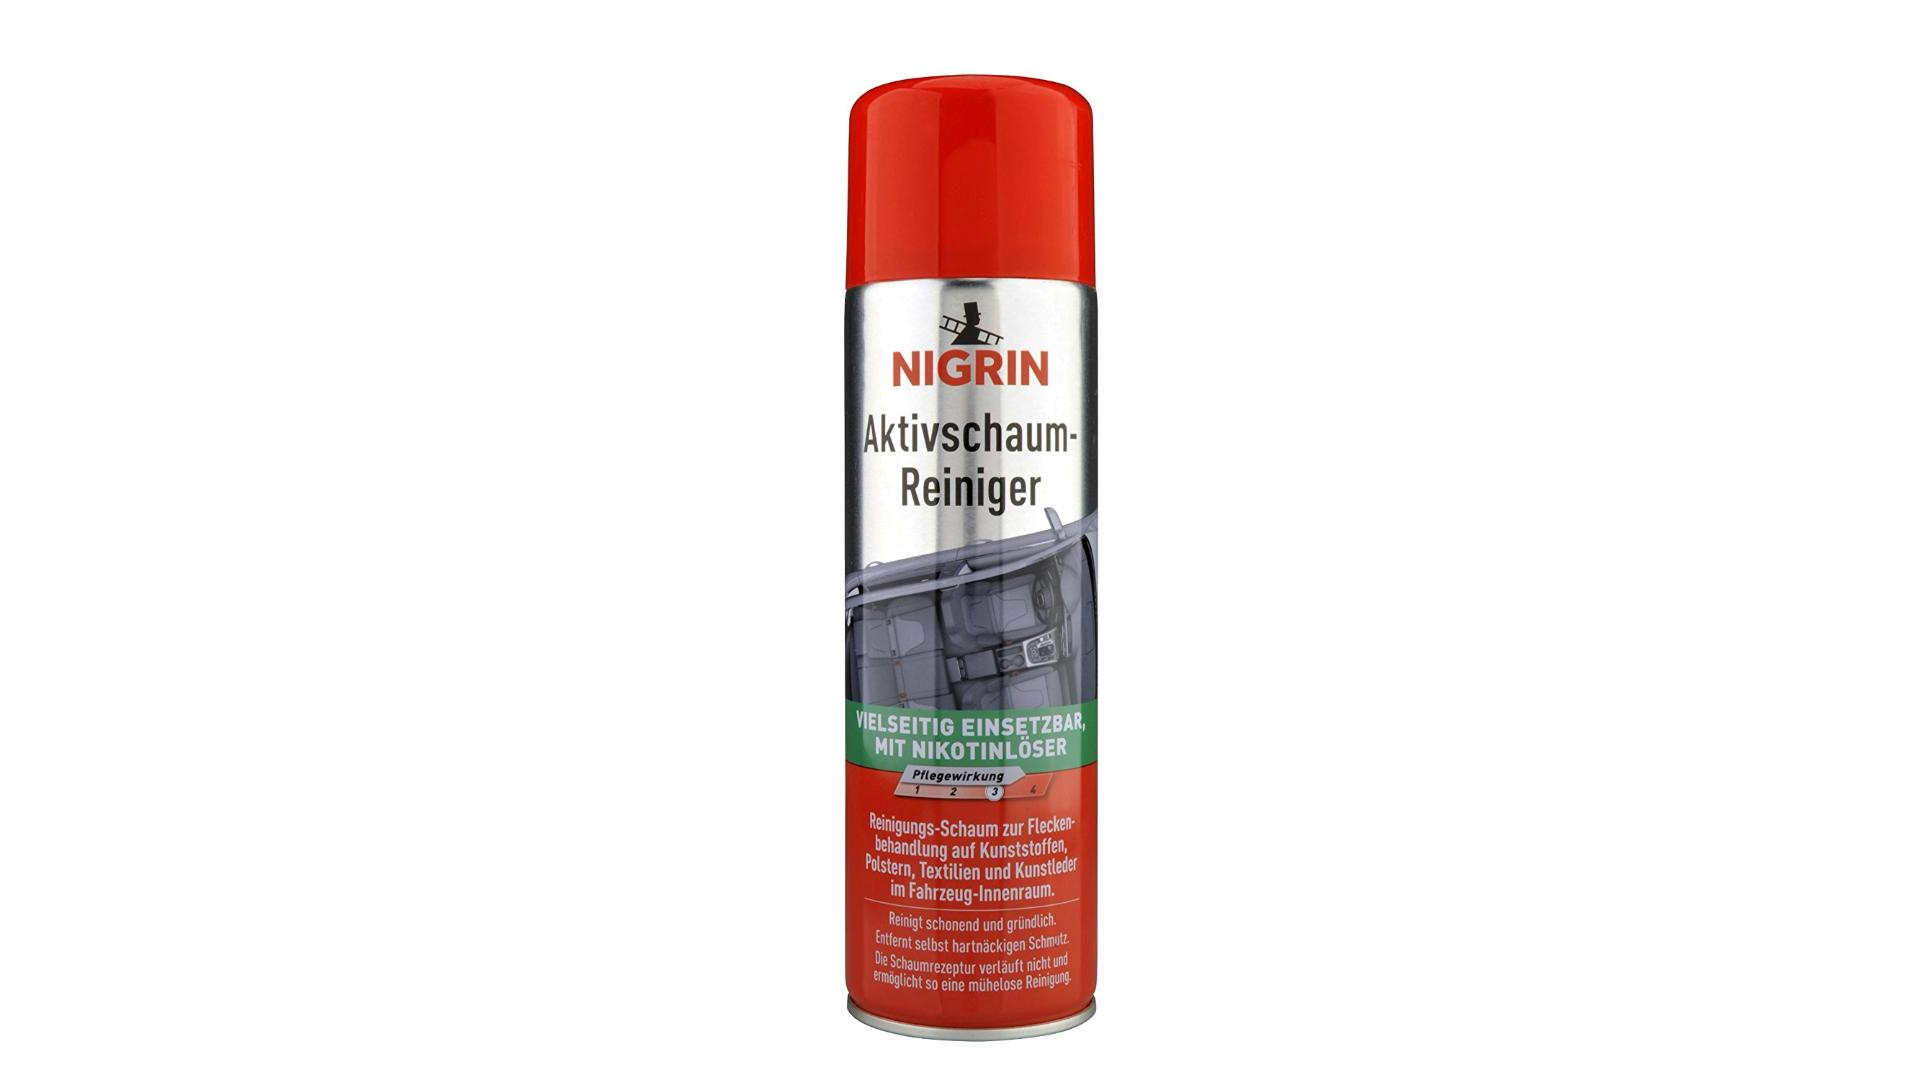 NIGRIN Active foam for cleaning 500ml